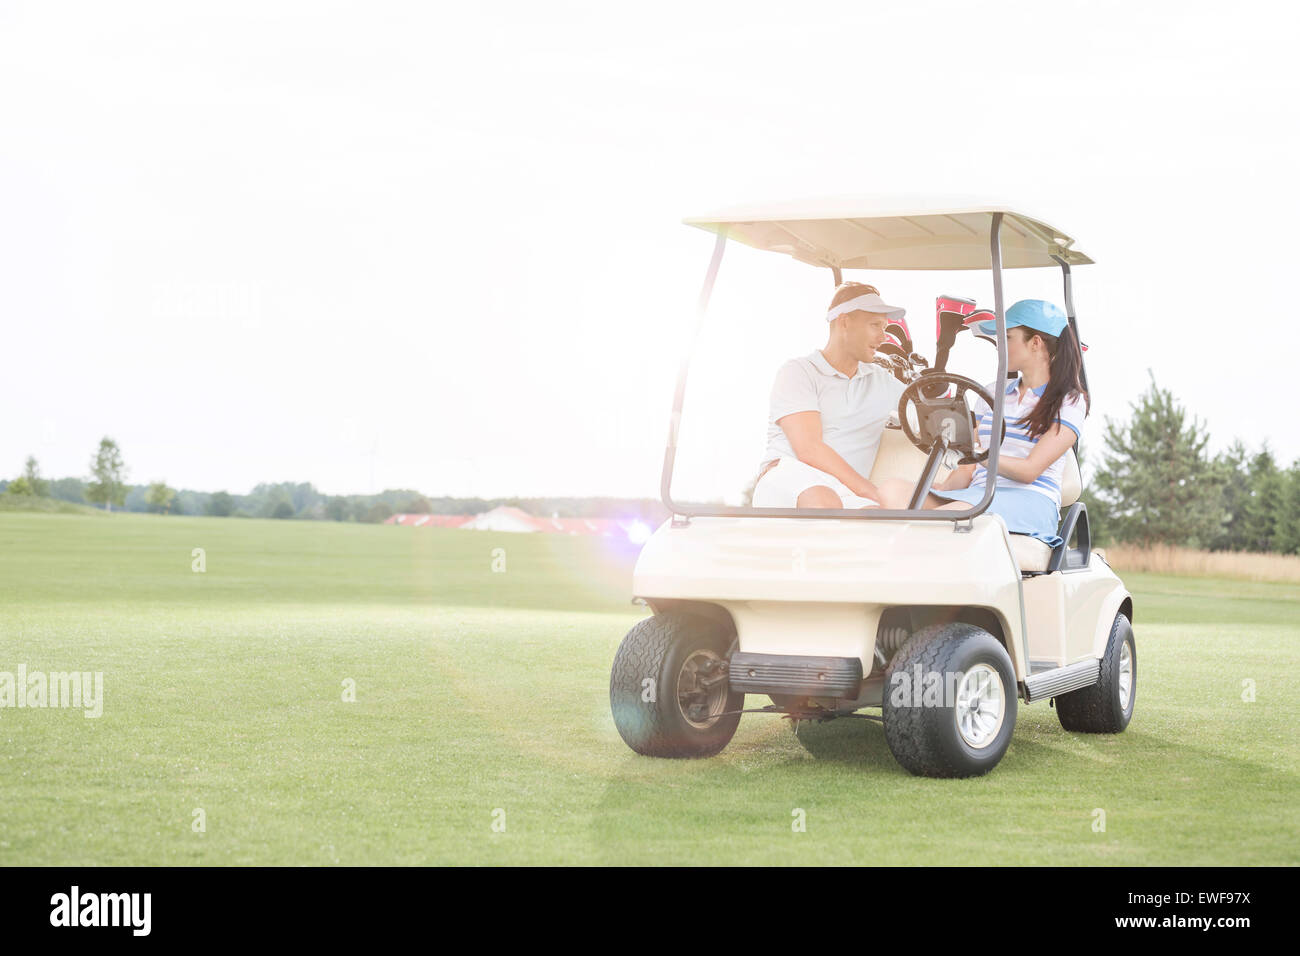 Couple looking at each other while sitting in golf cart against clear sky - Stock Image